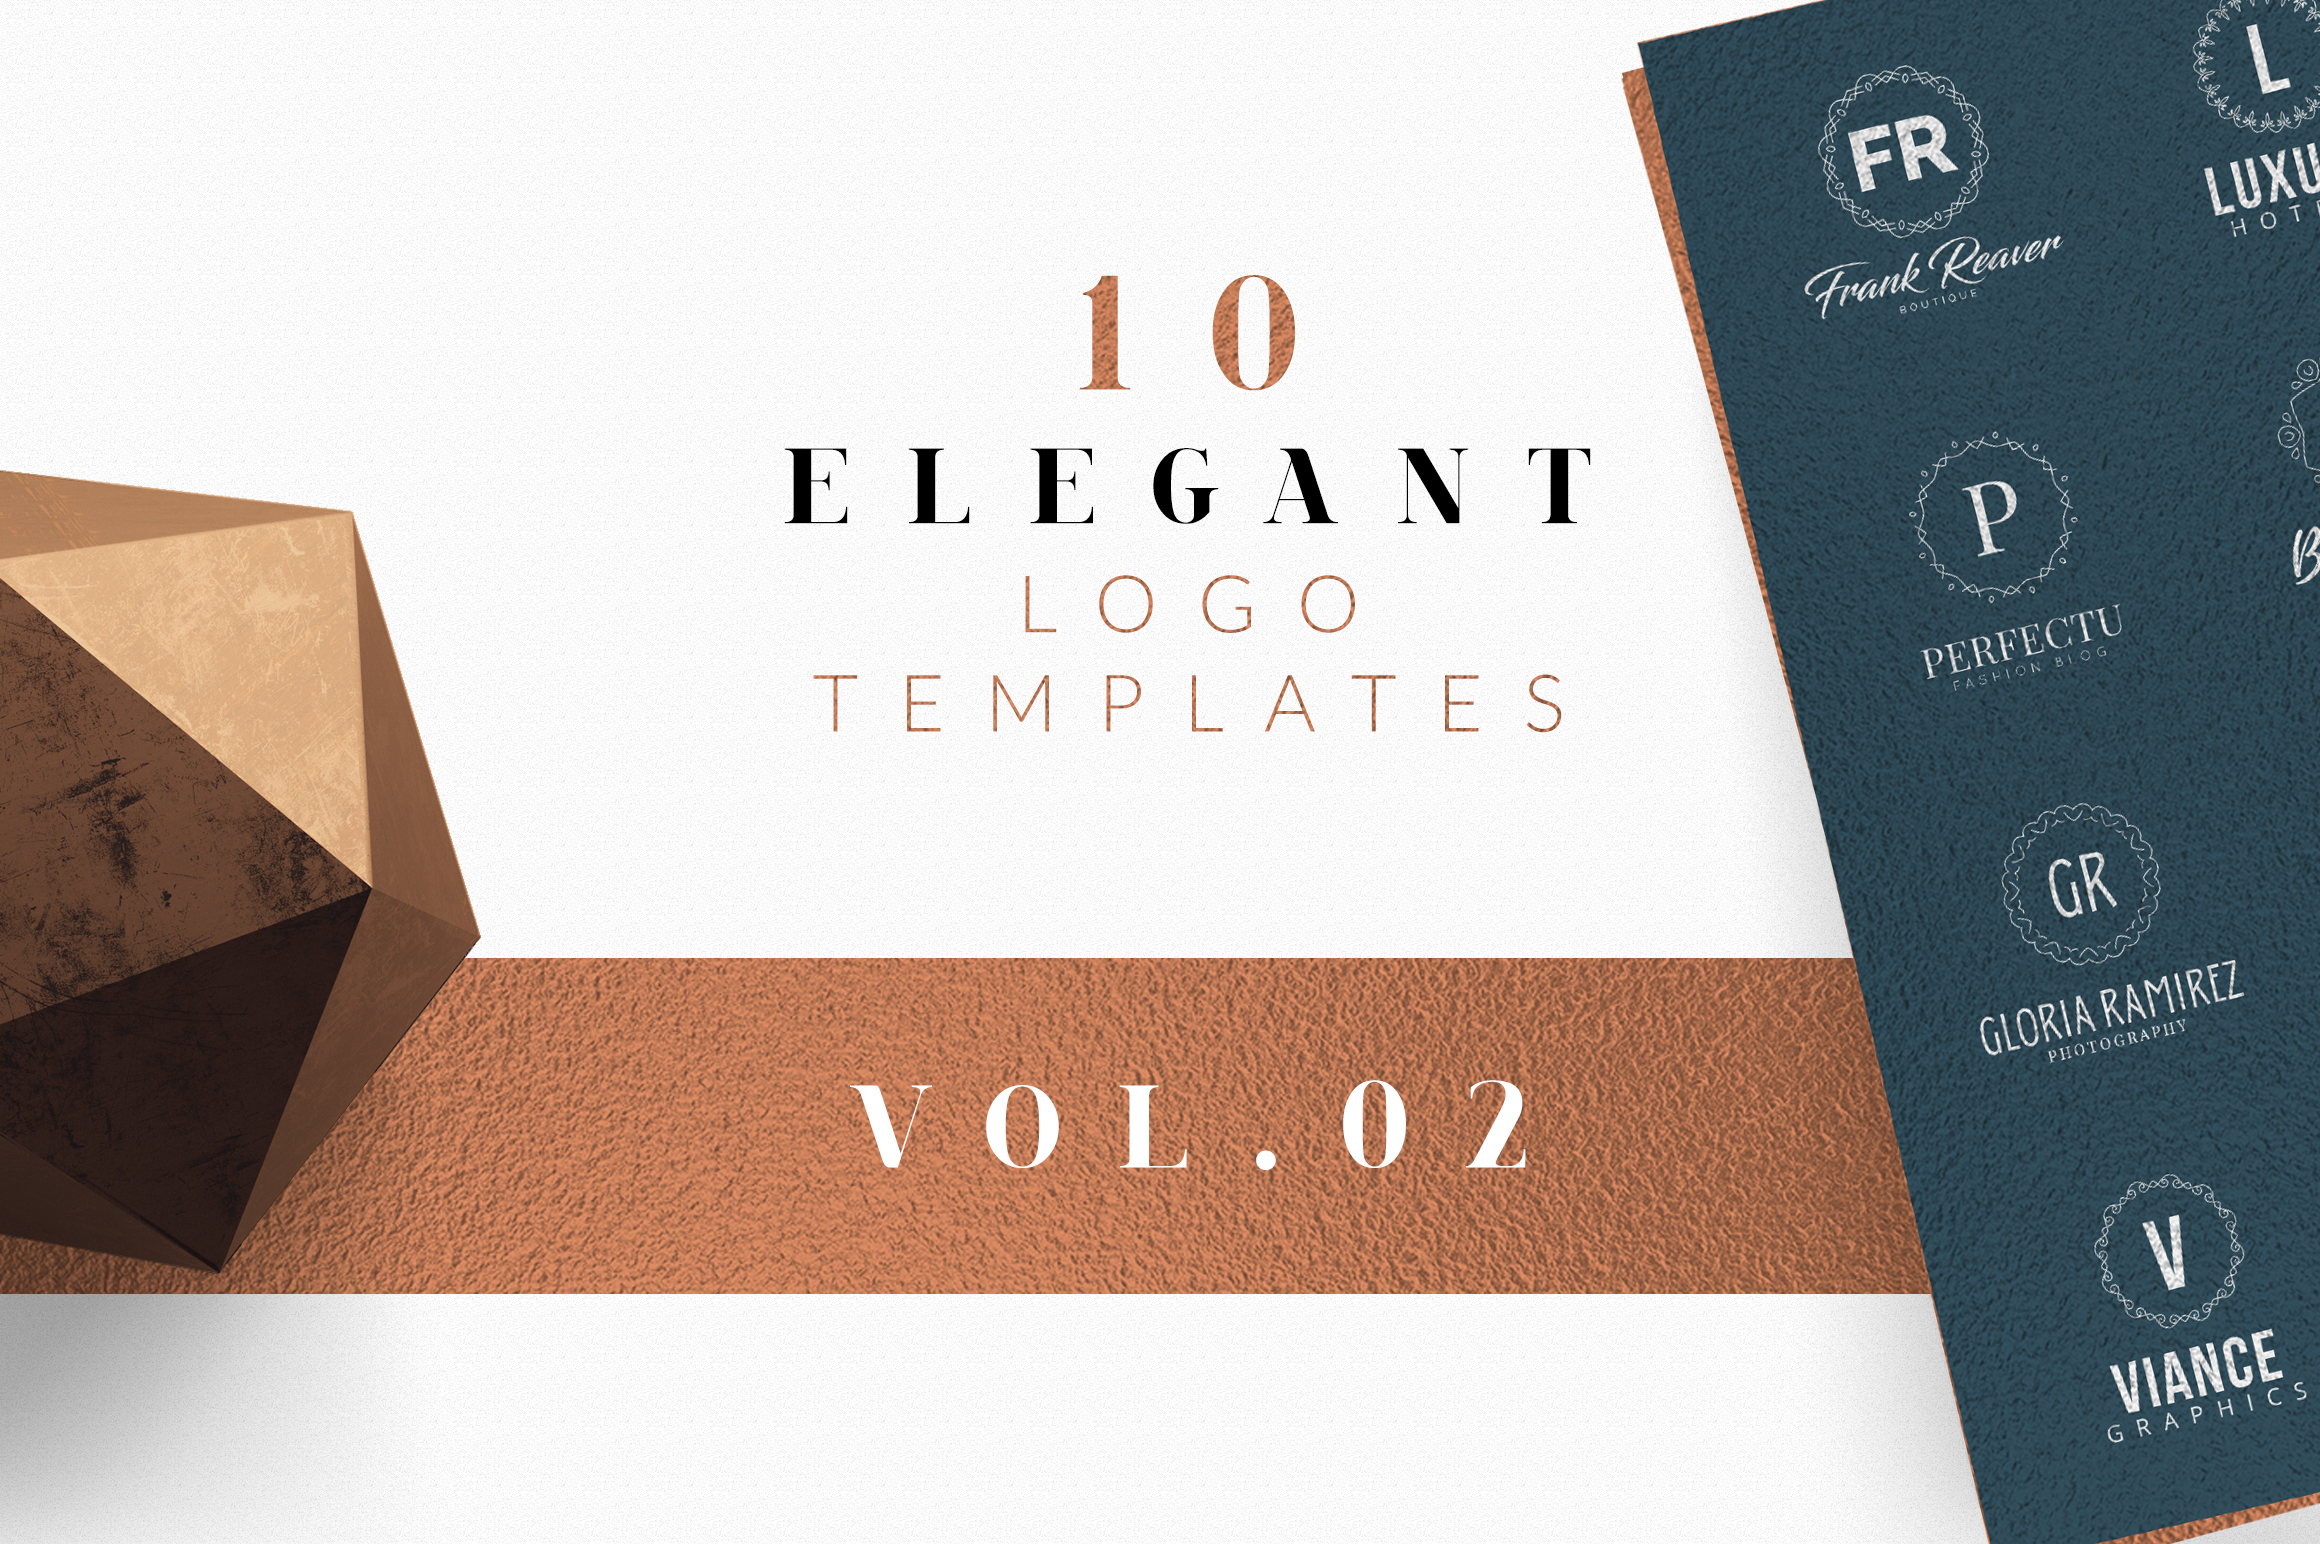 10 Elegant Logo Templates Vol.02 example image 1